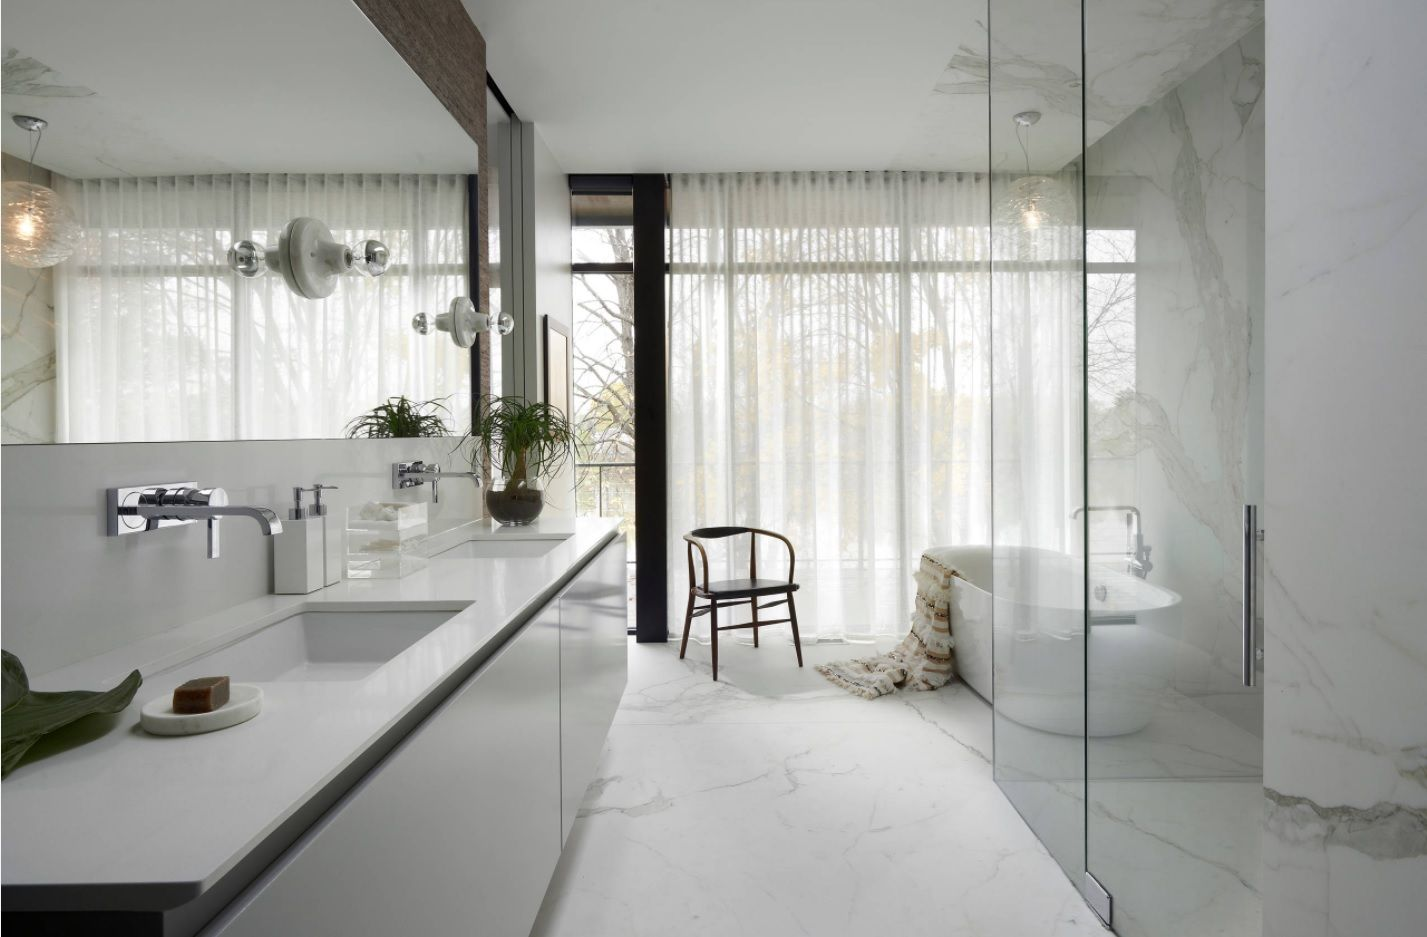 Master Bathroom Design Ideas with Real Interior Photos. Large panoramic window behind the tulle and white snow interior